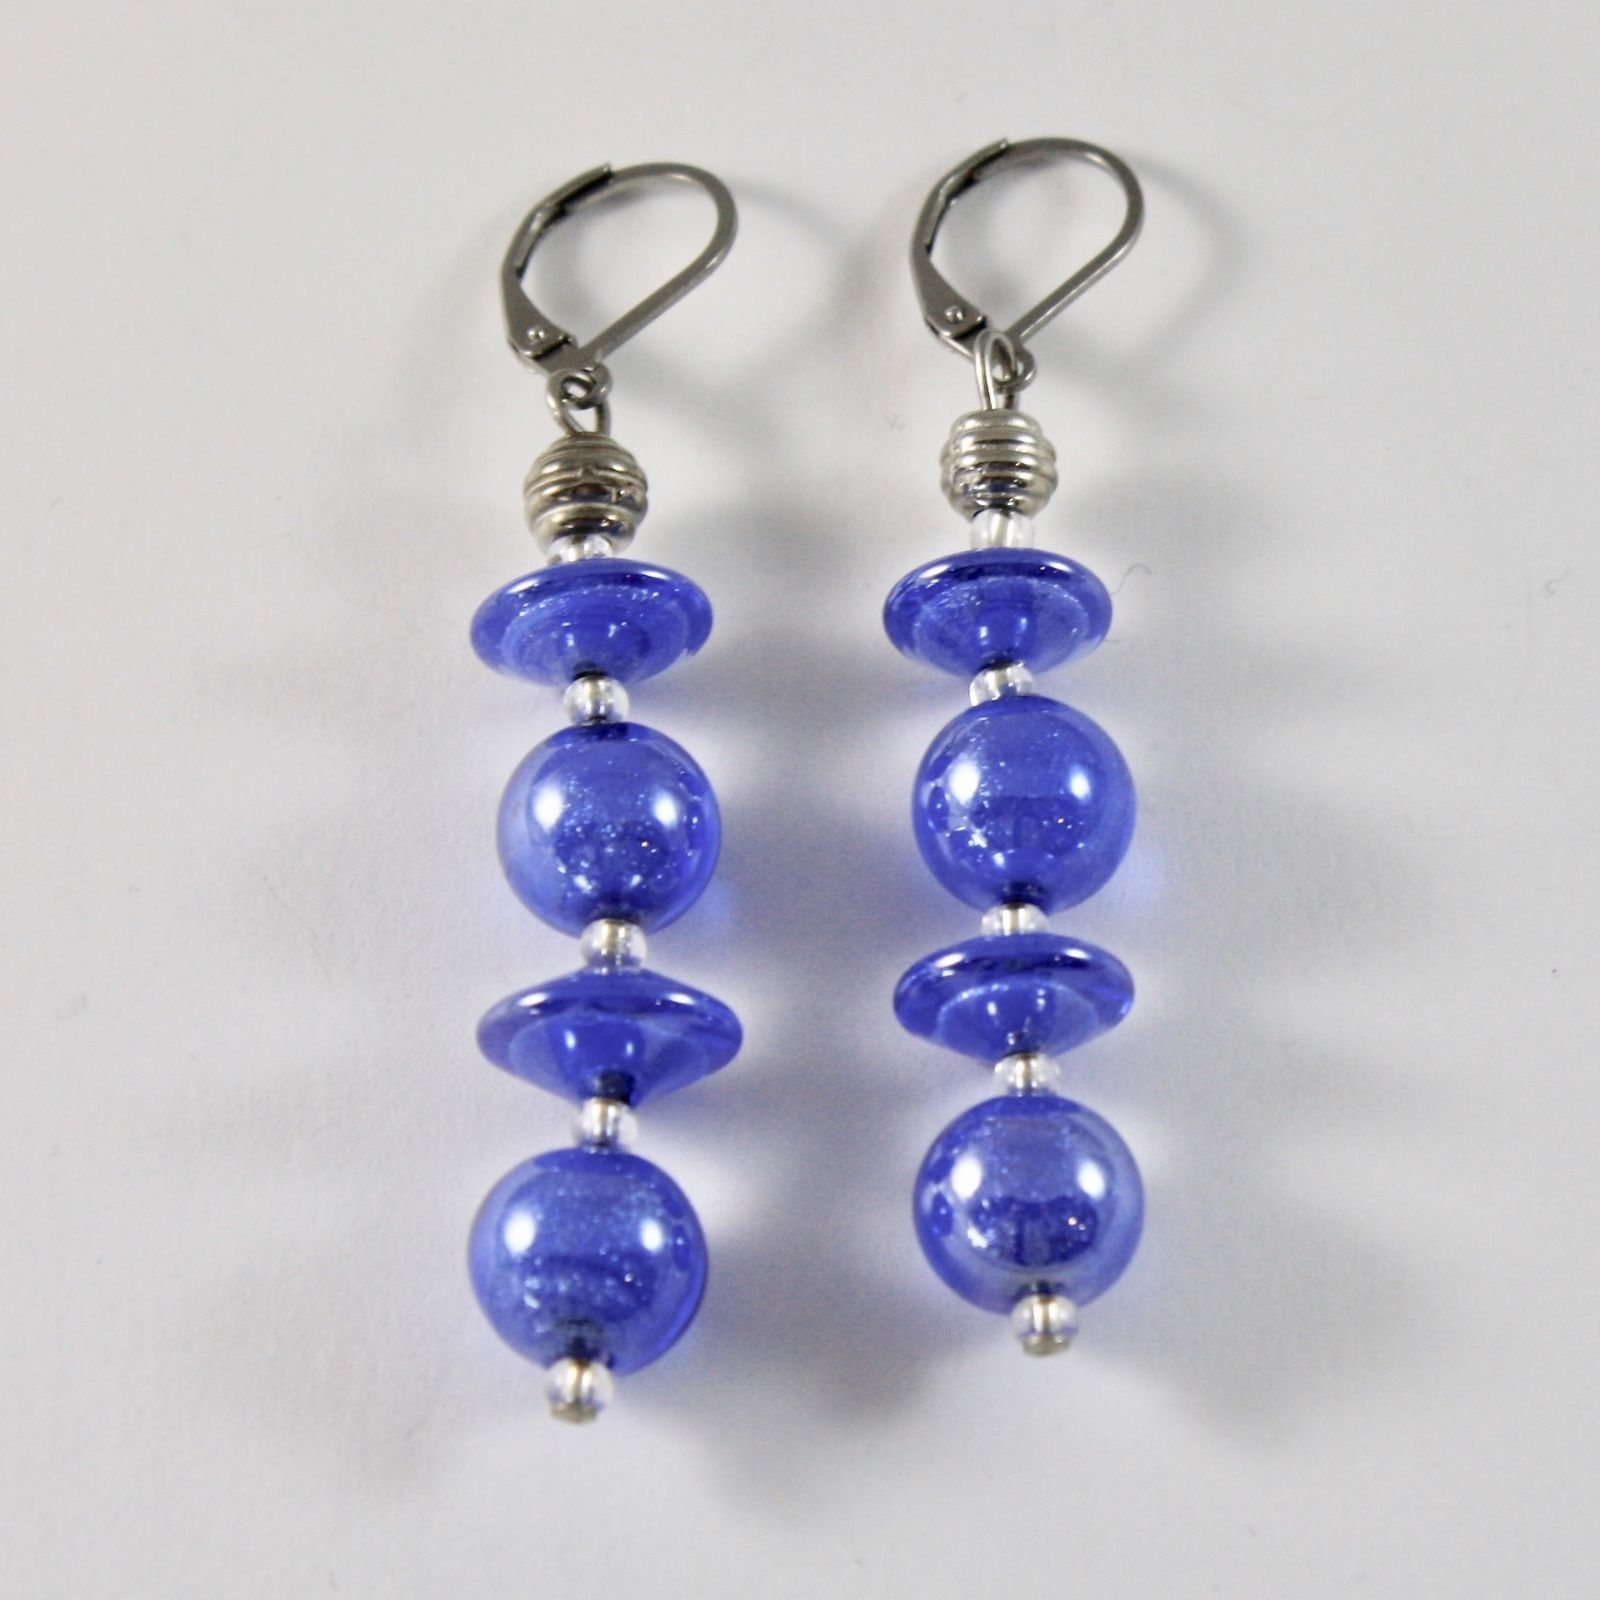 EARRINGS ANTICA MURRINA VENEZIA WITH MURANO GLASS DISCS SPHERES BLUE HANGING